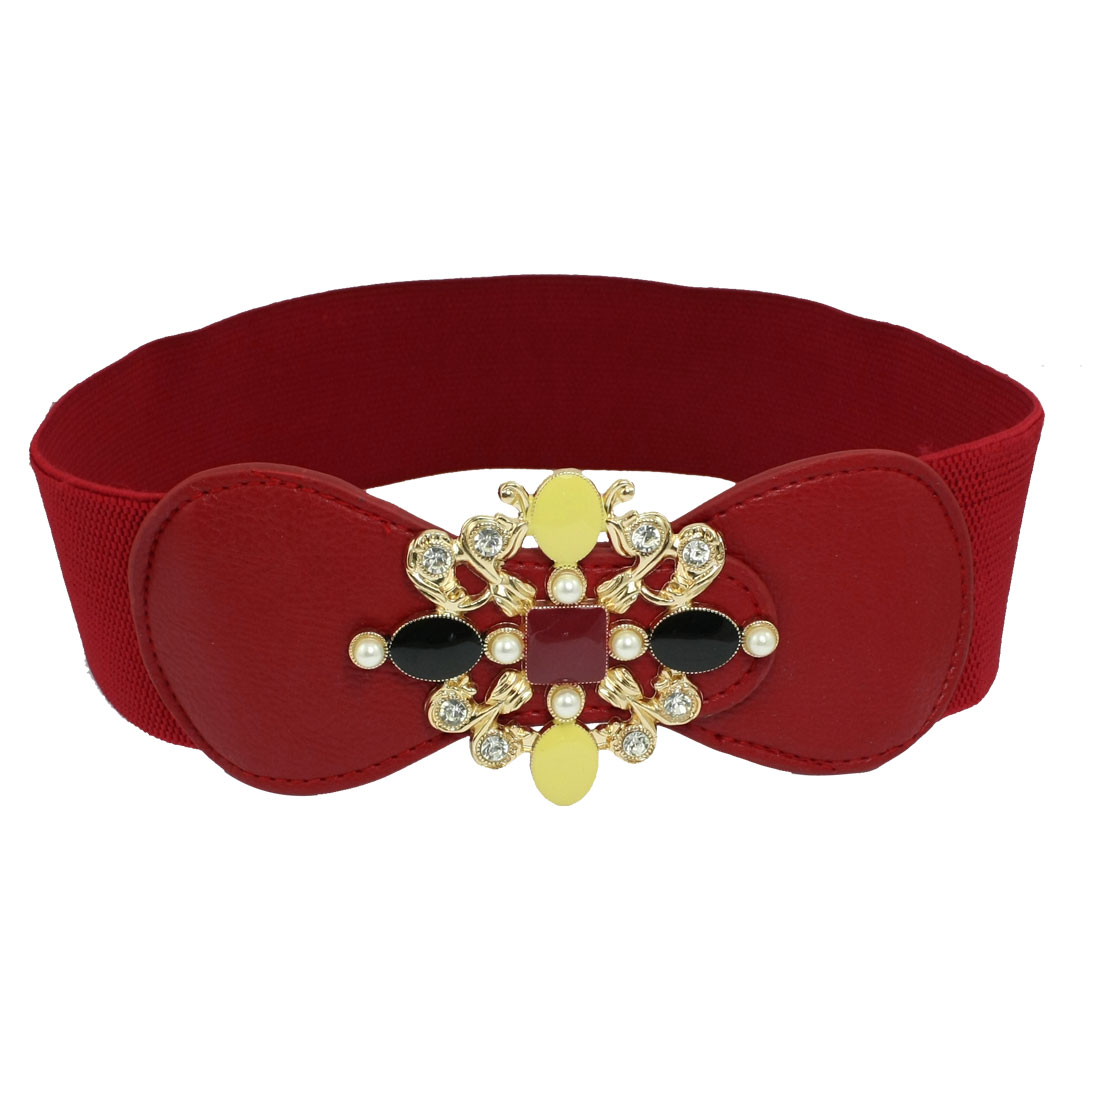 Press Buckle Rhinestone Detail Stretchy Waistband Red for Ladies